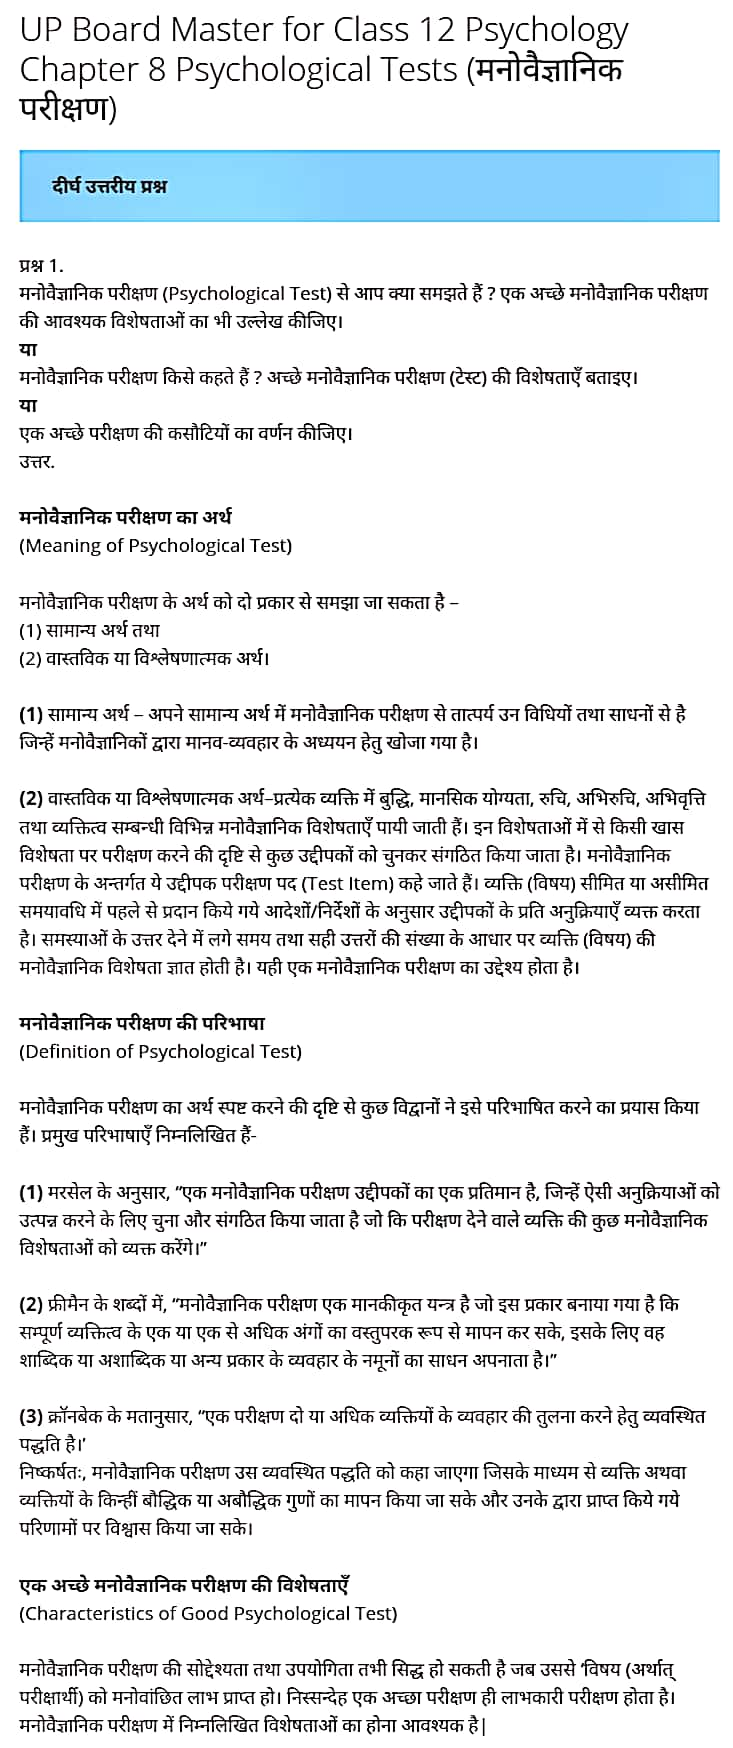 UP Board Solutions for Class 12 Psychology Chapter 8 Psychological Tests (मनोवैज्ञानिक परीक्षण)